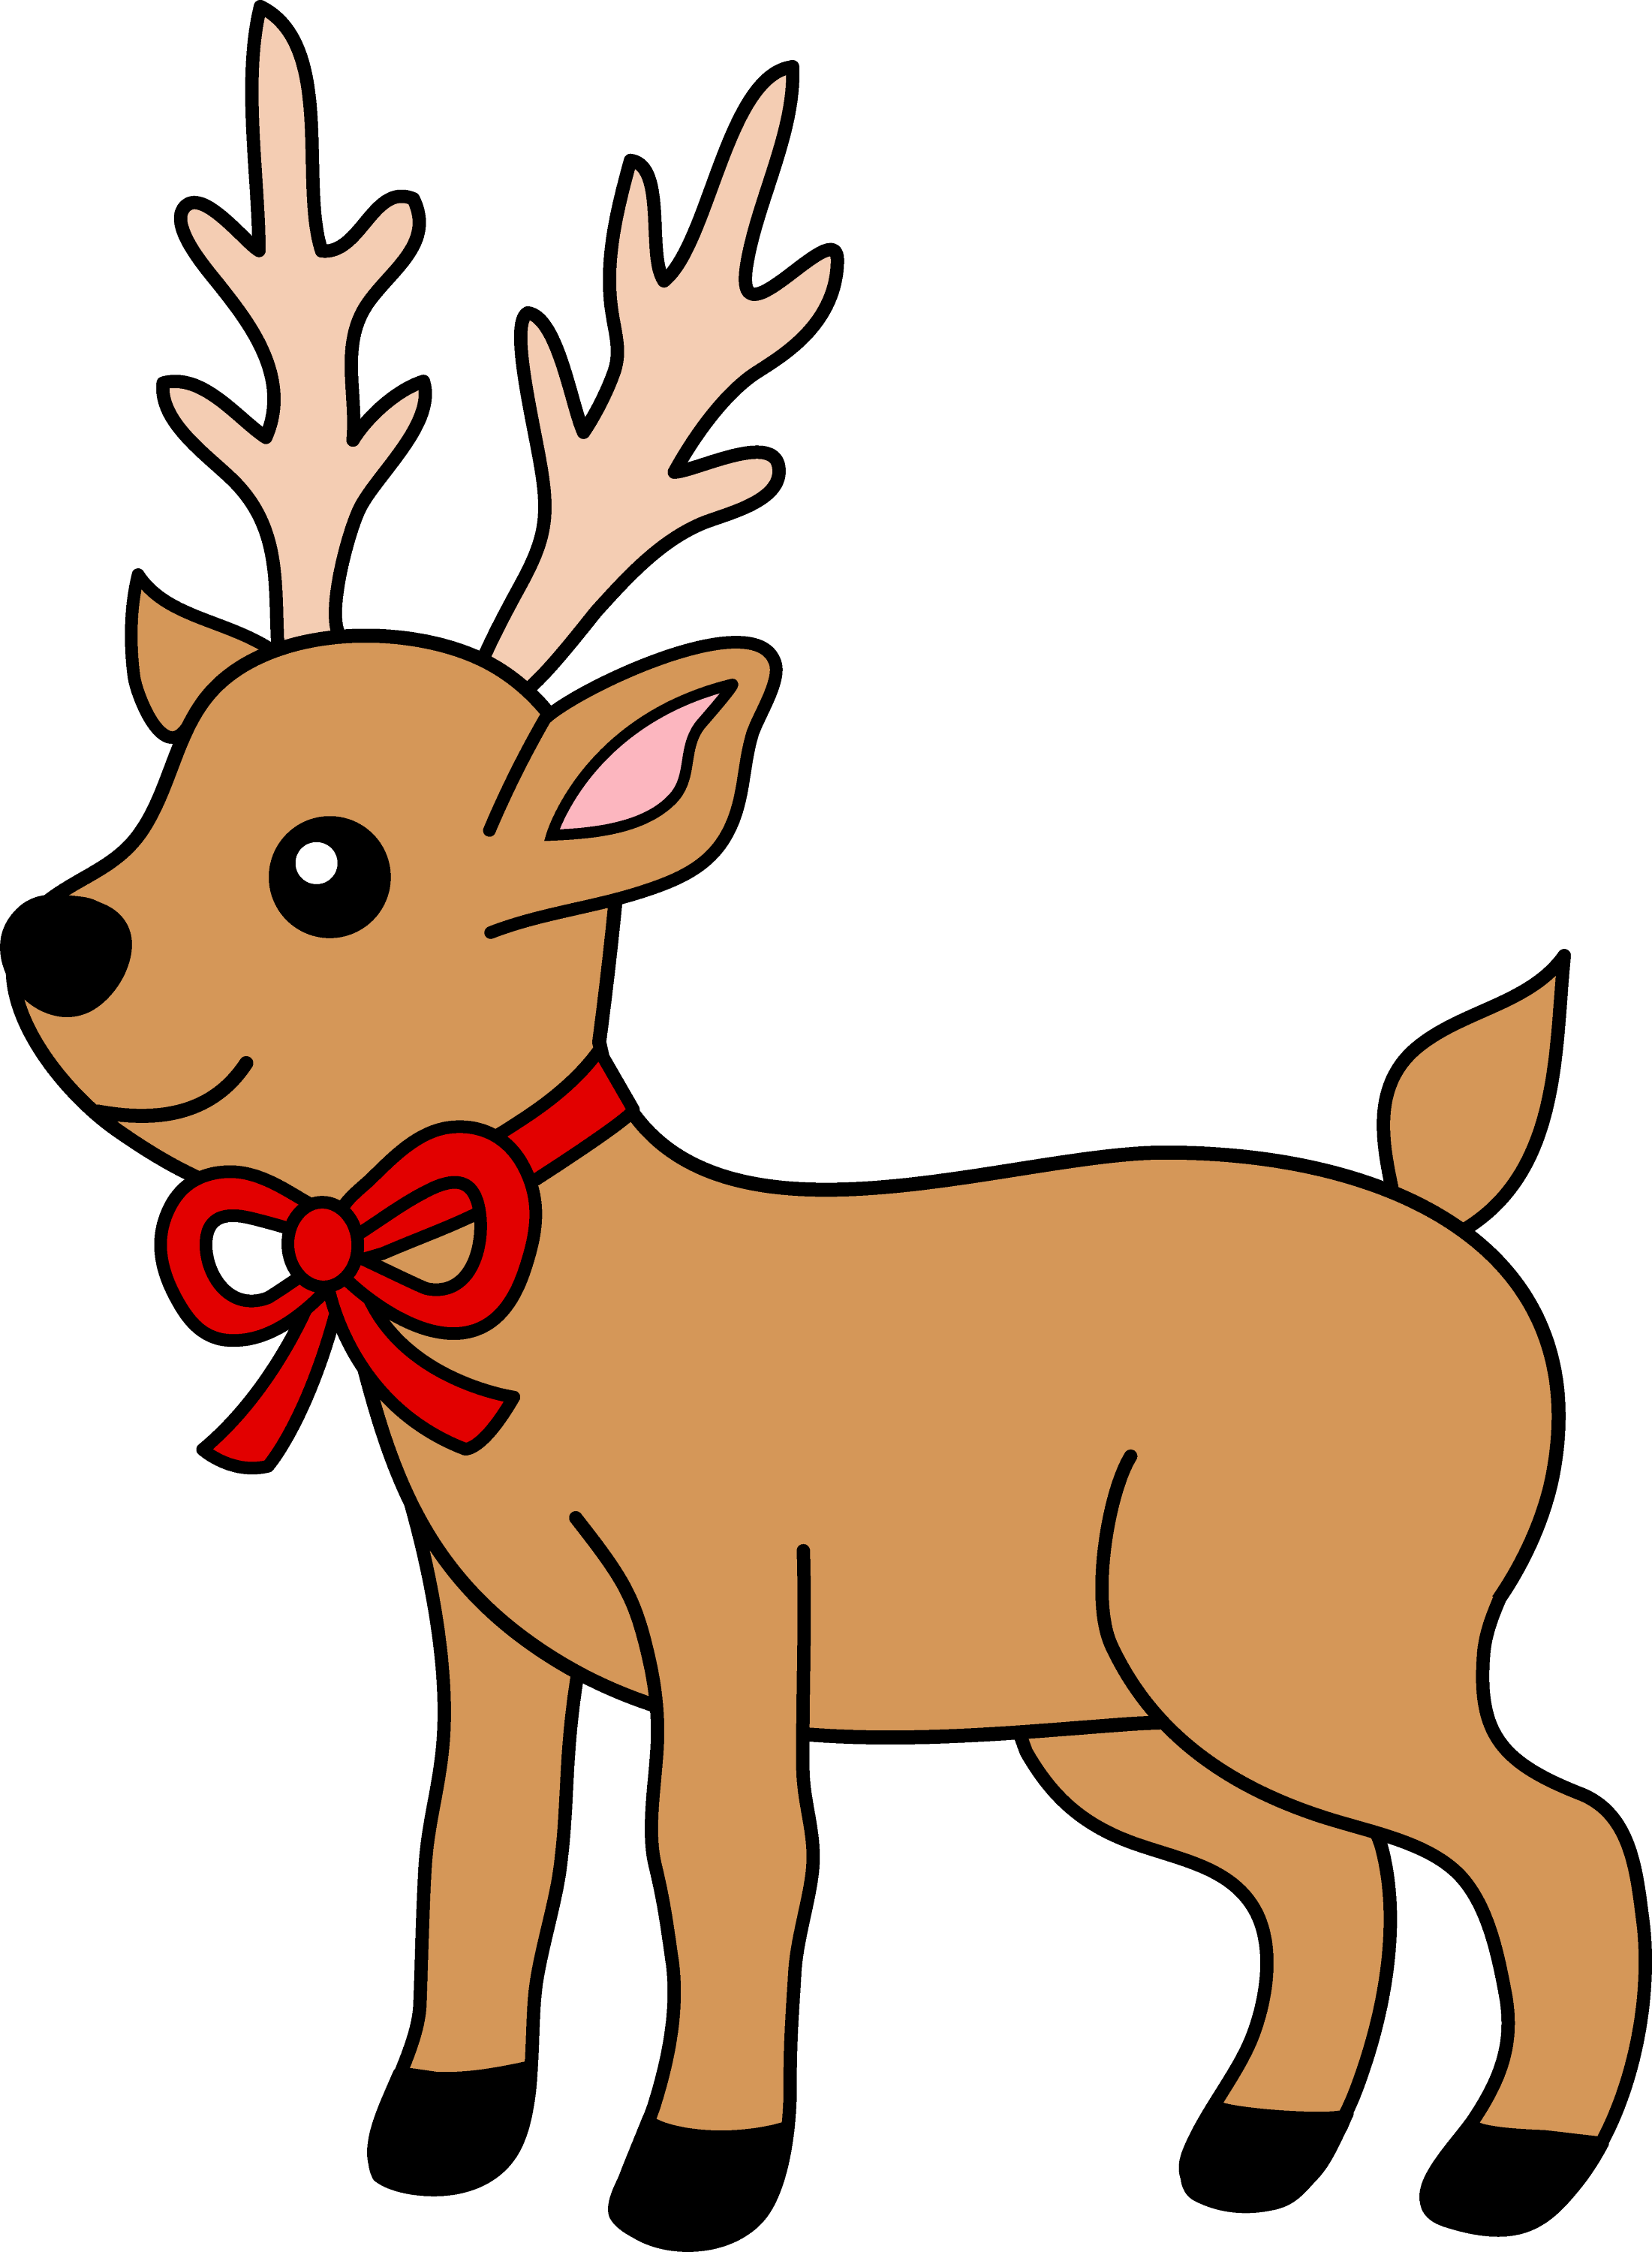 Christmas Reindeer.Christmas Reindeer With Red Ribbon Free Clip Art